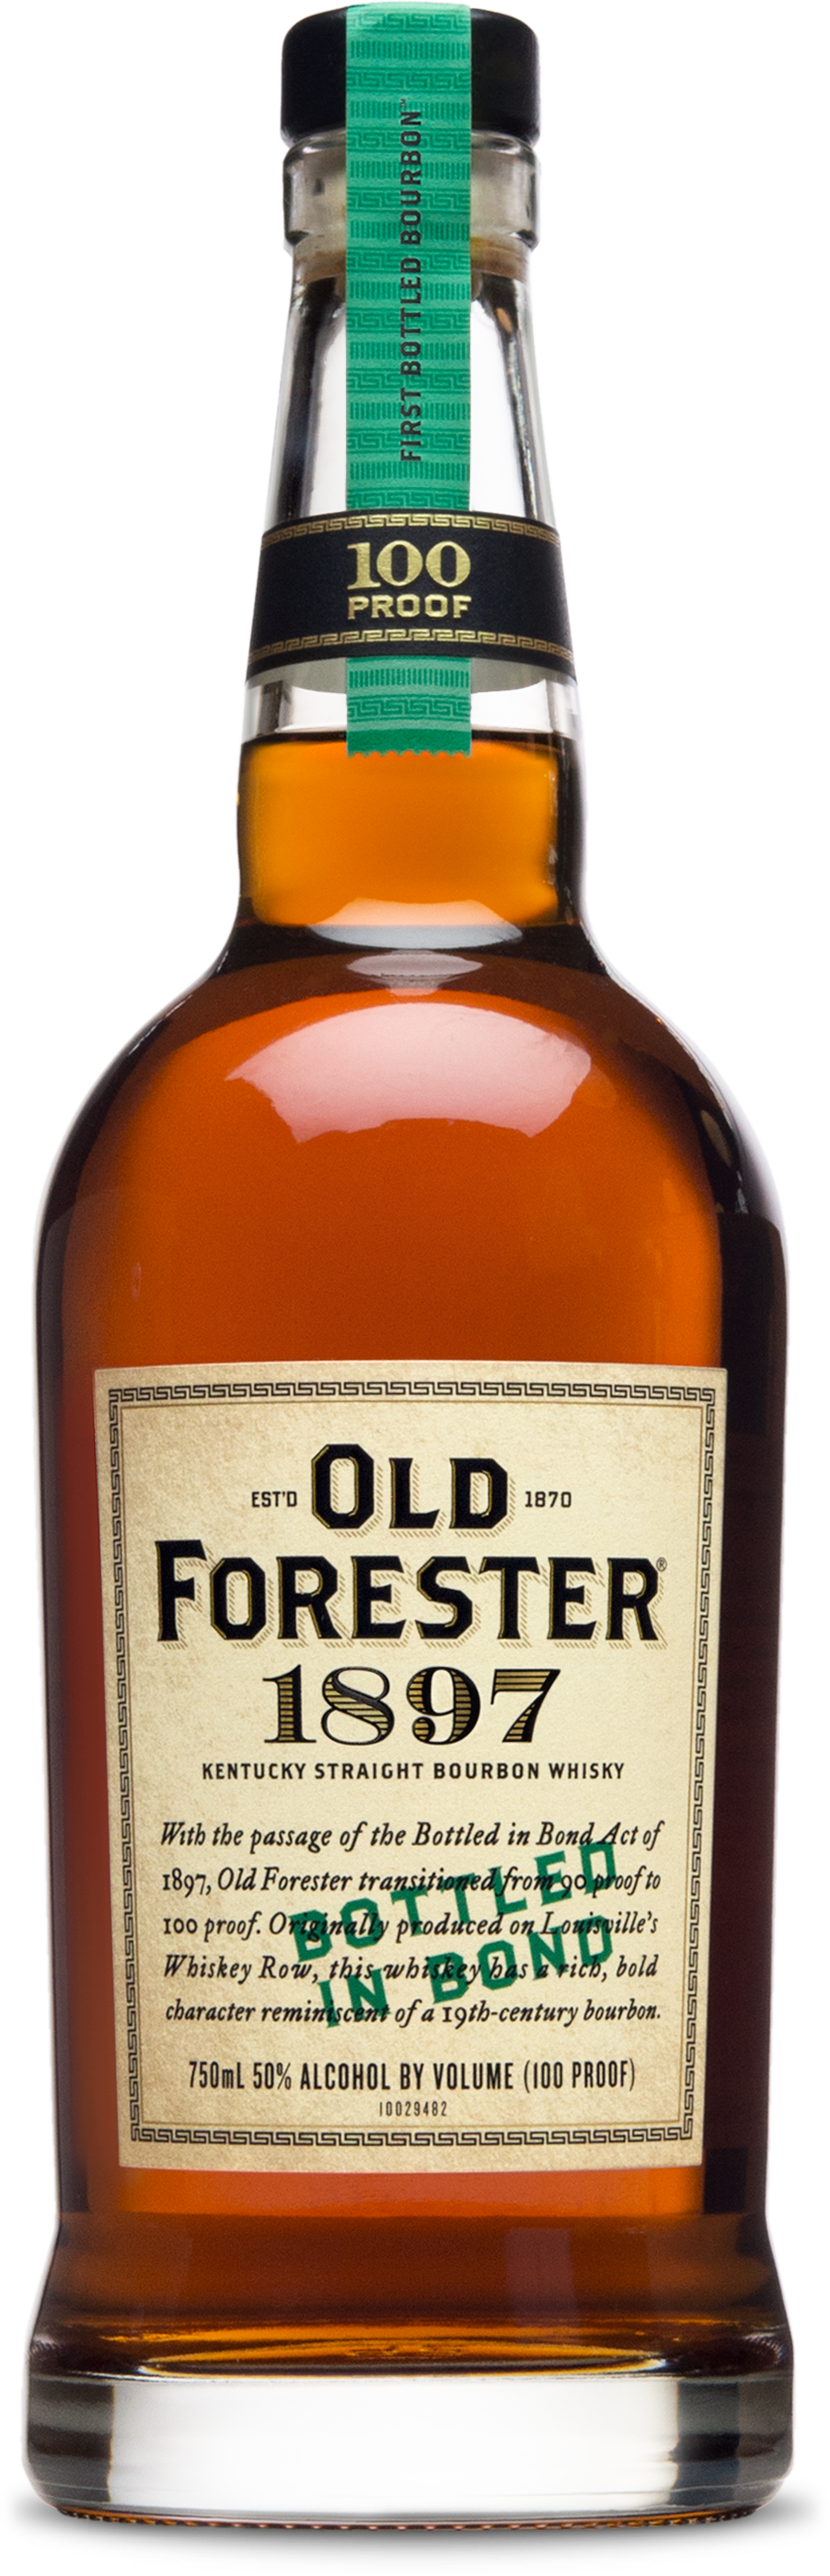 1897 Bottled in Bond